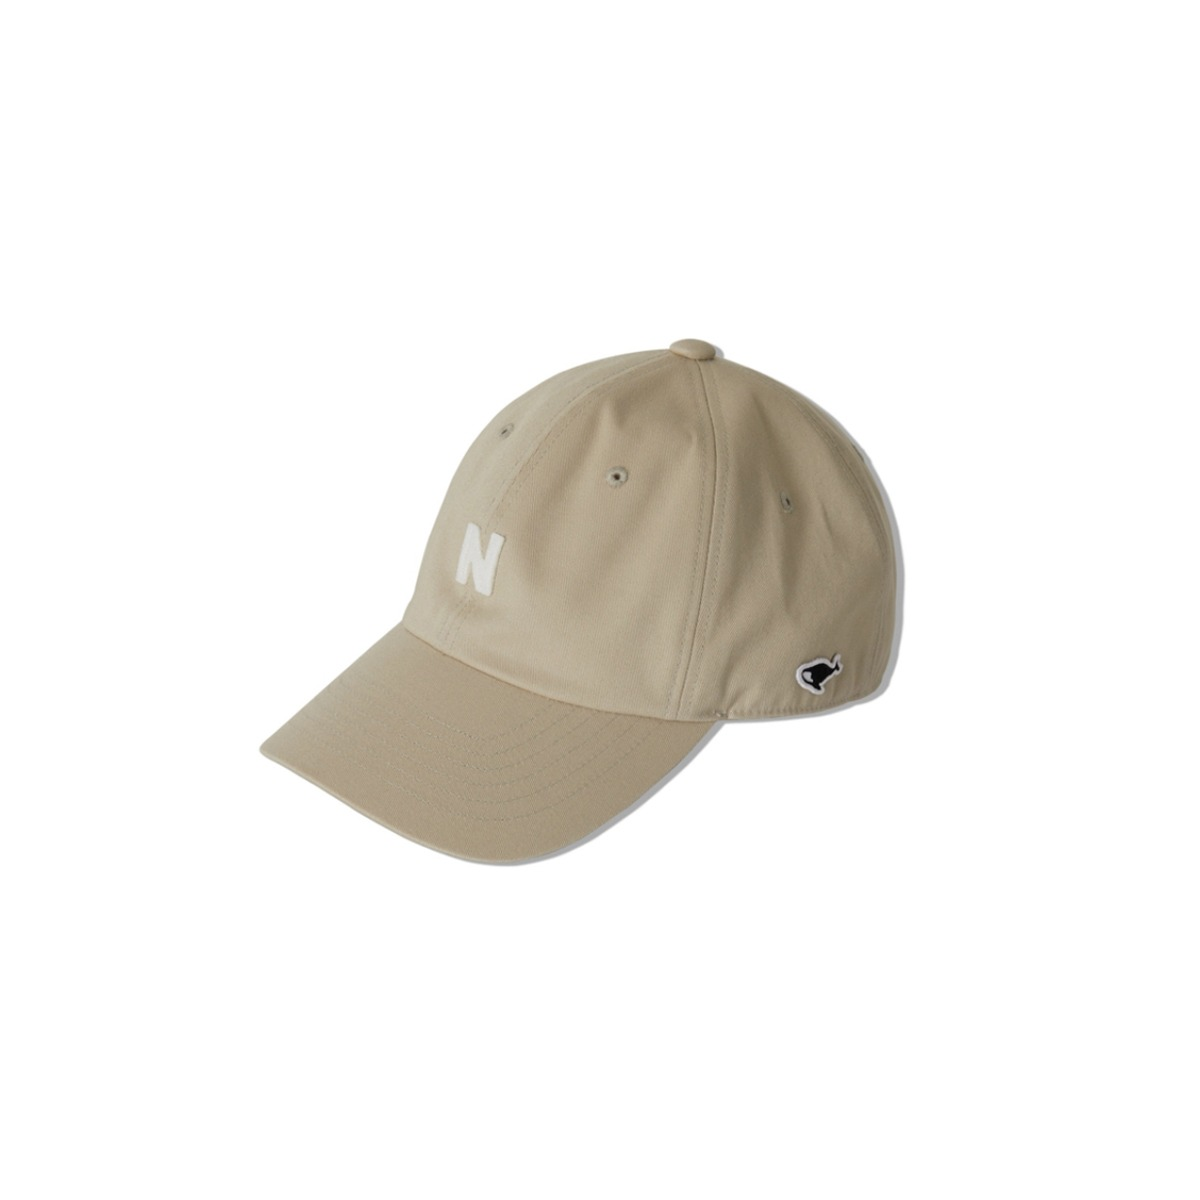 [NEITHERS] N BALL CAP 'BEIGE'